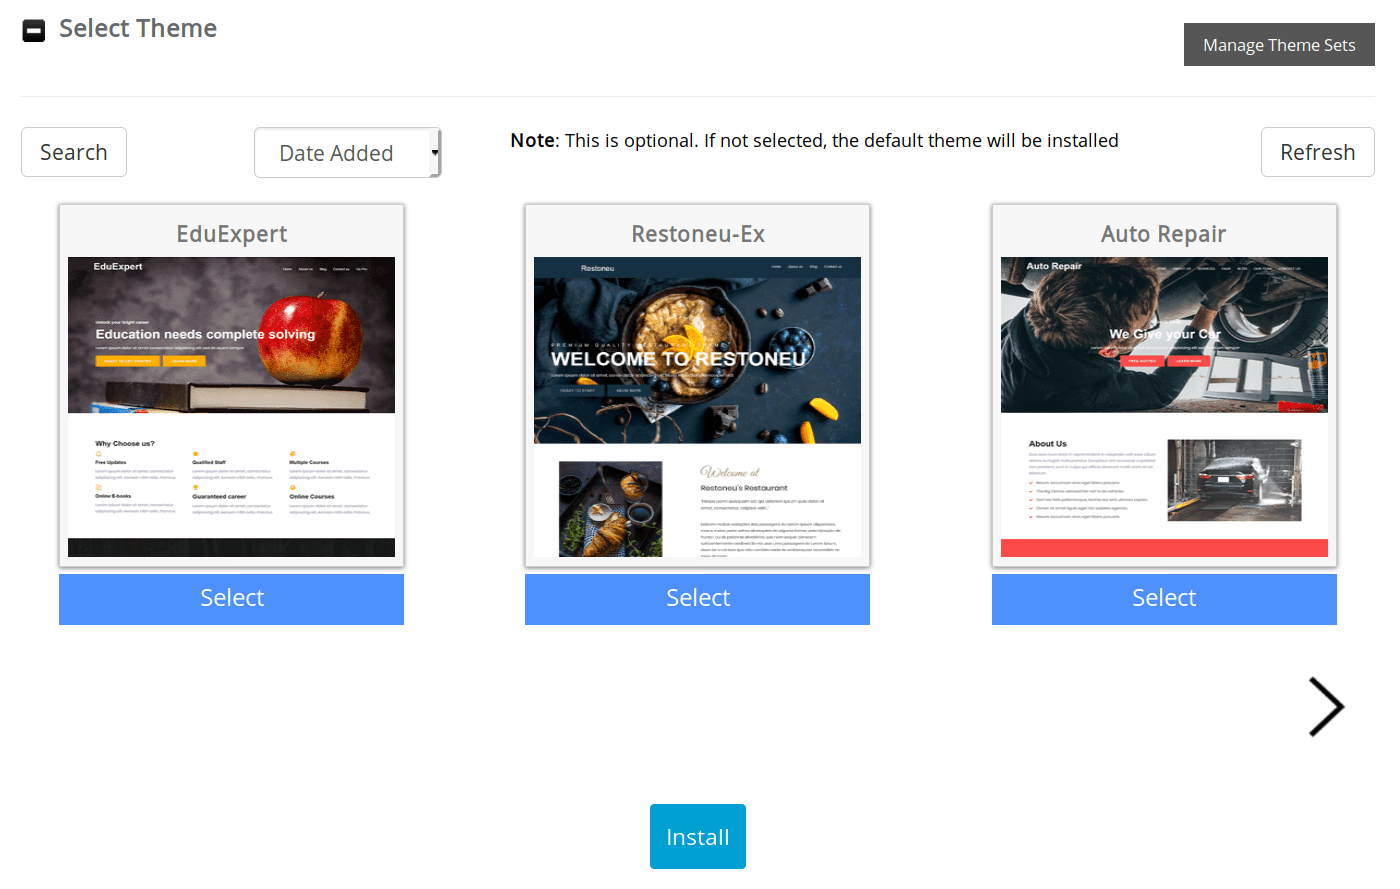 Select a theme and click install